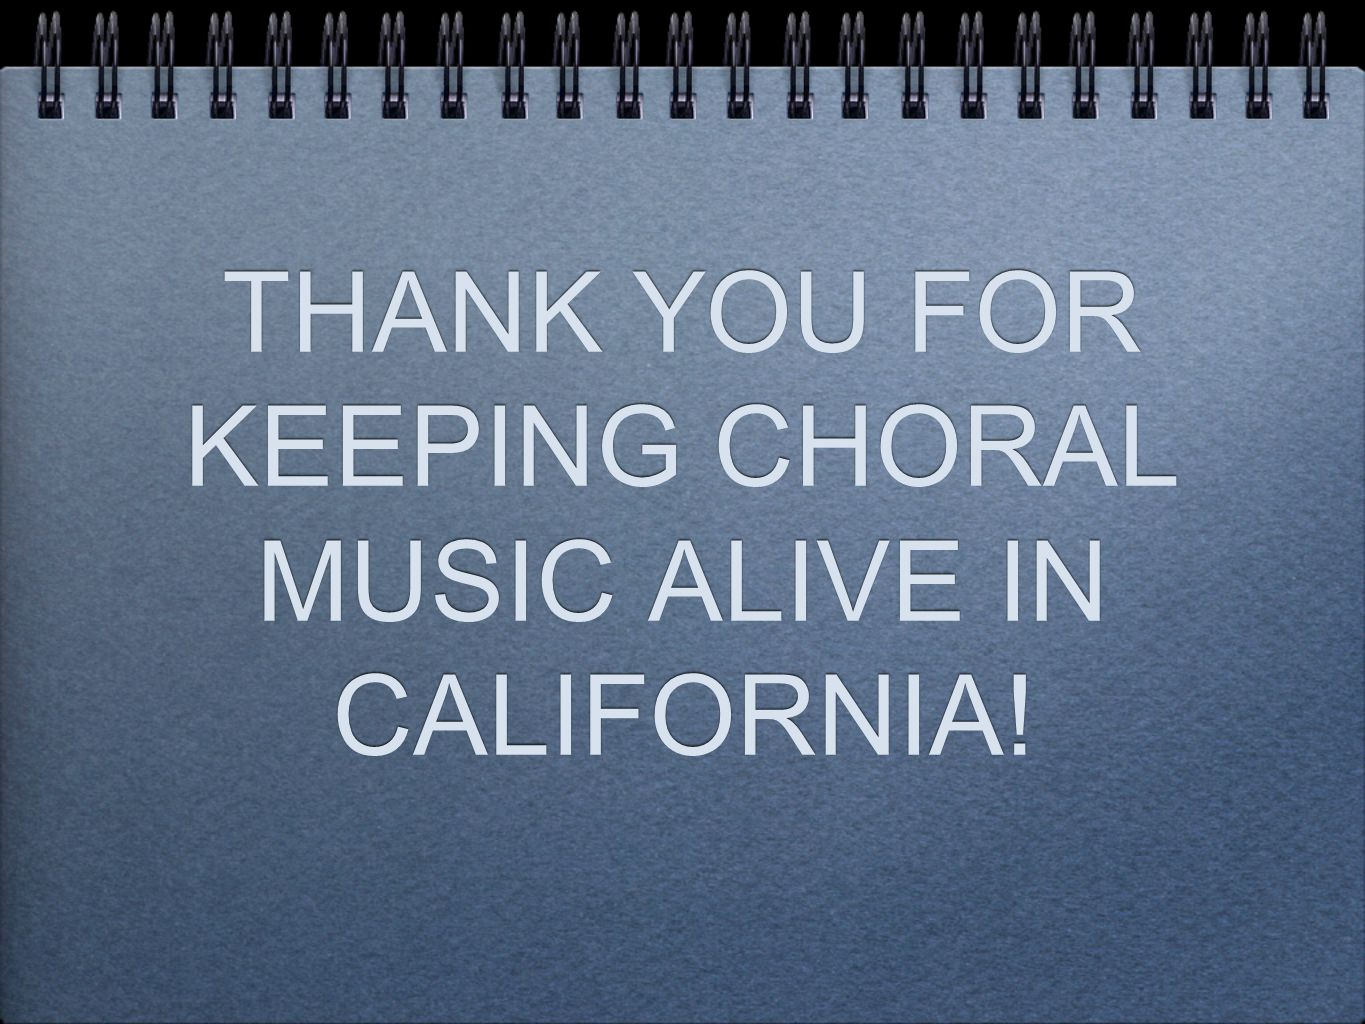 THANK YOU FOR KEEPING CHORAL MUSIC ALIVE IN CALIFORNIA!